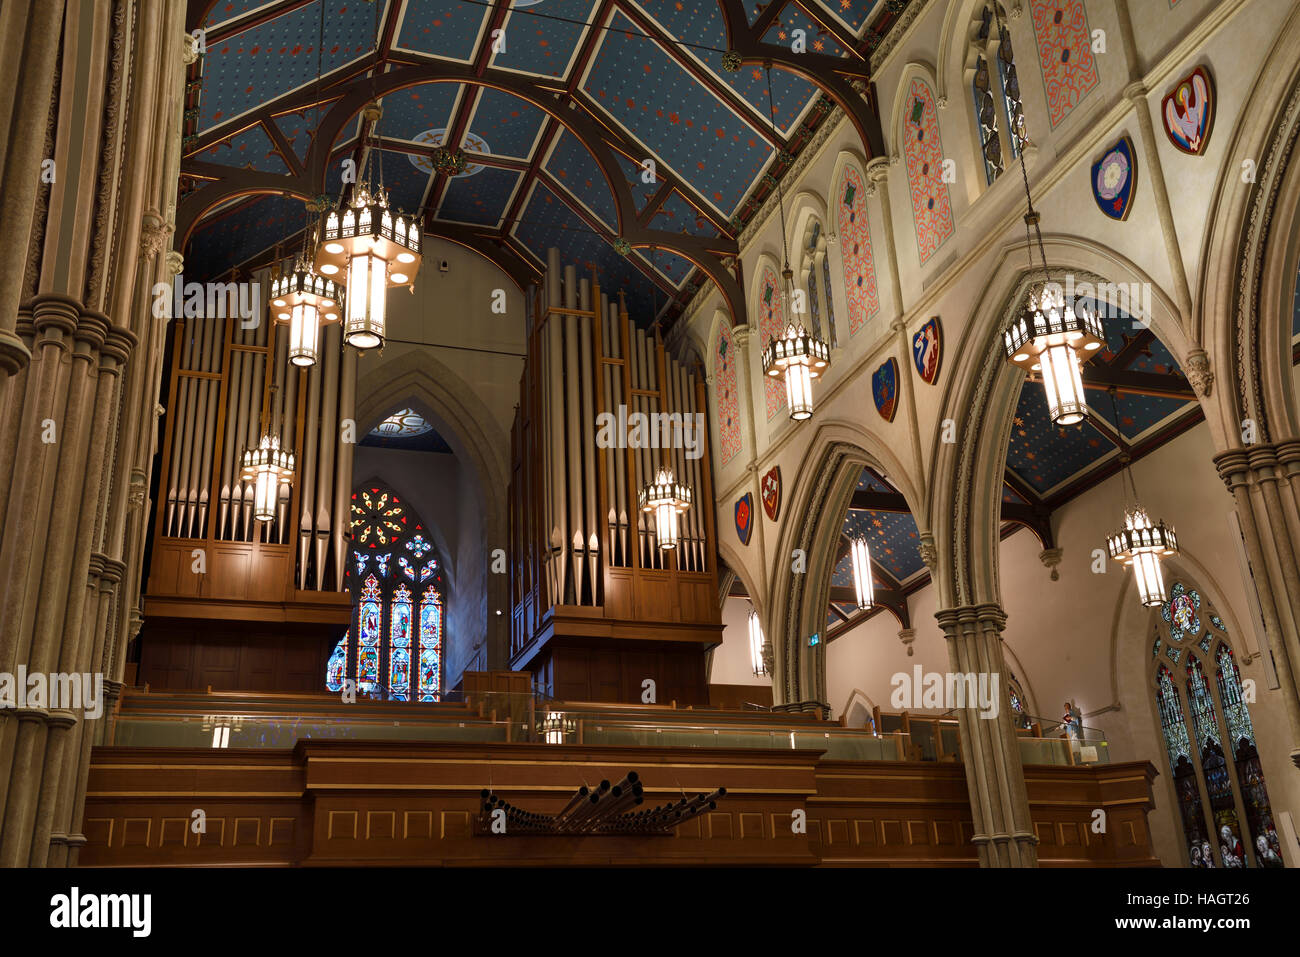 New pipe organ in the choir loft of St Michael's Cathedral Basilica Toronto - Stock Image